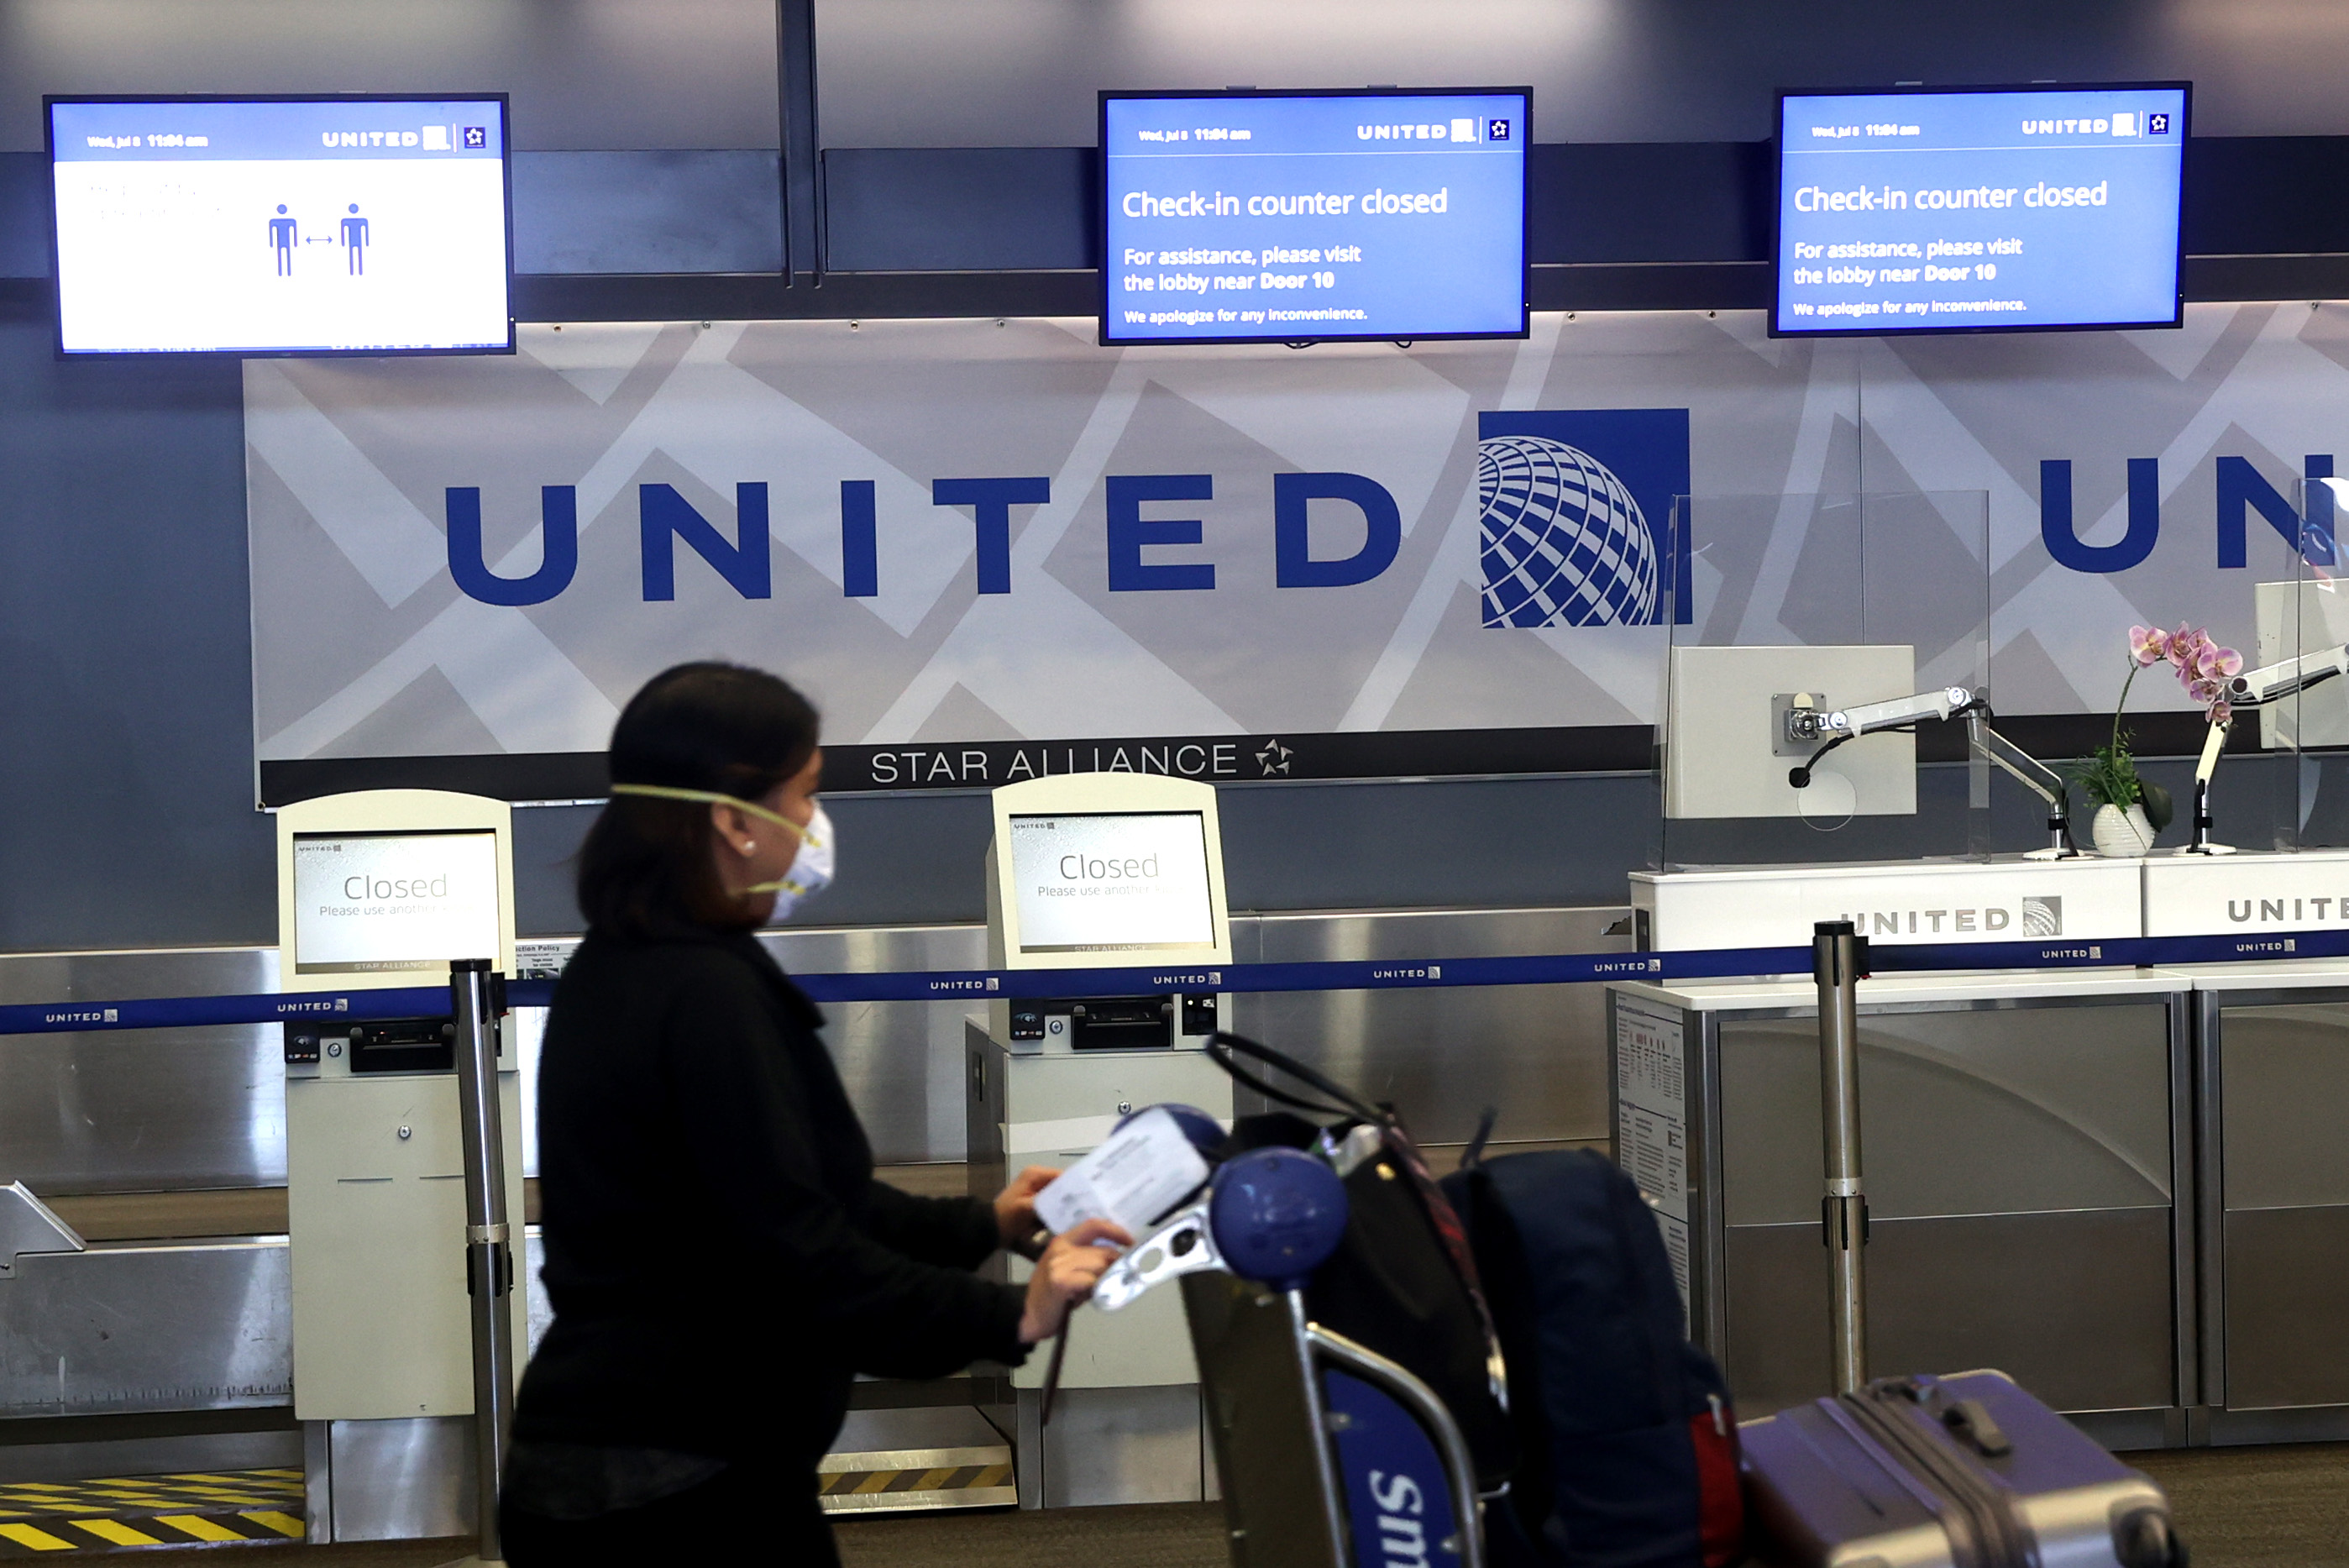 A United Airlines passenger pushes a luggage cart past a closed check-in kiosk in San Francisco on Wednesday.